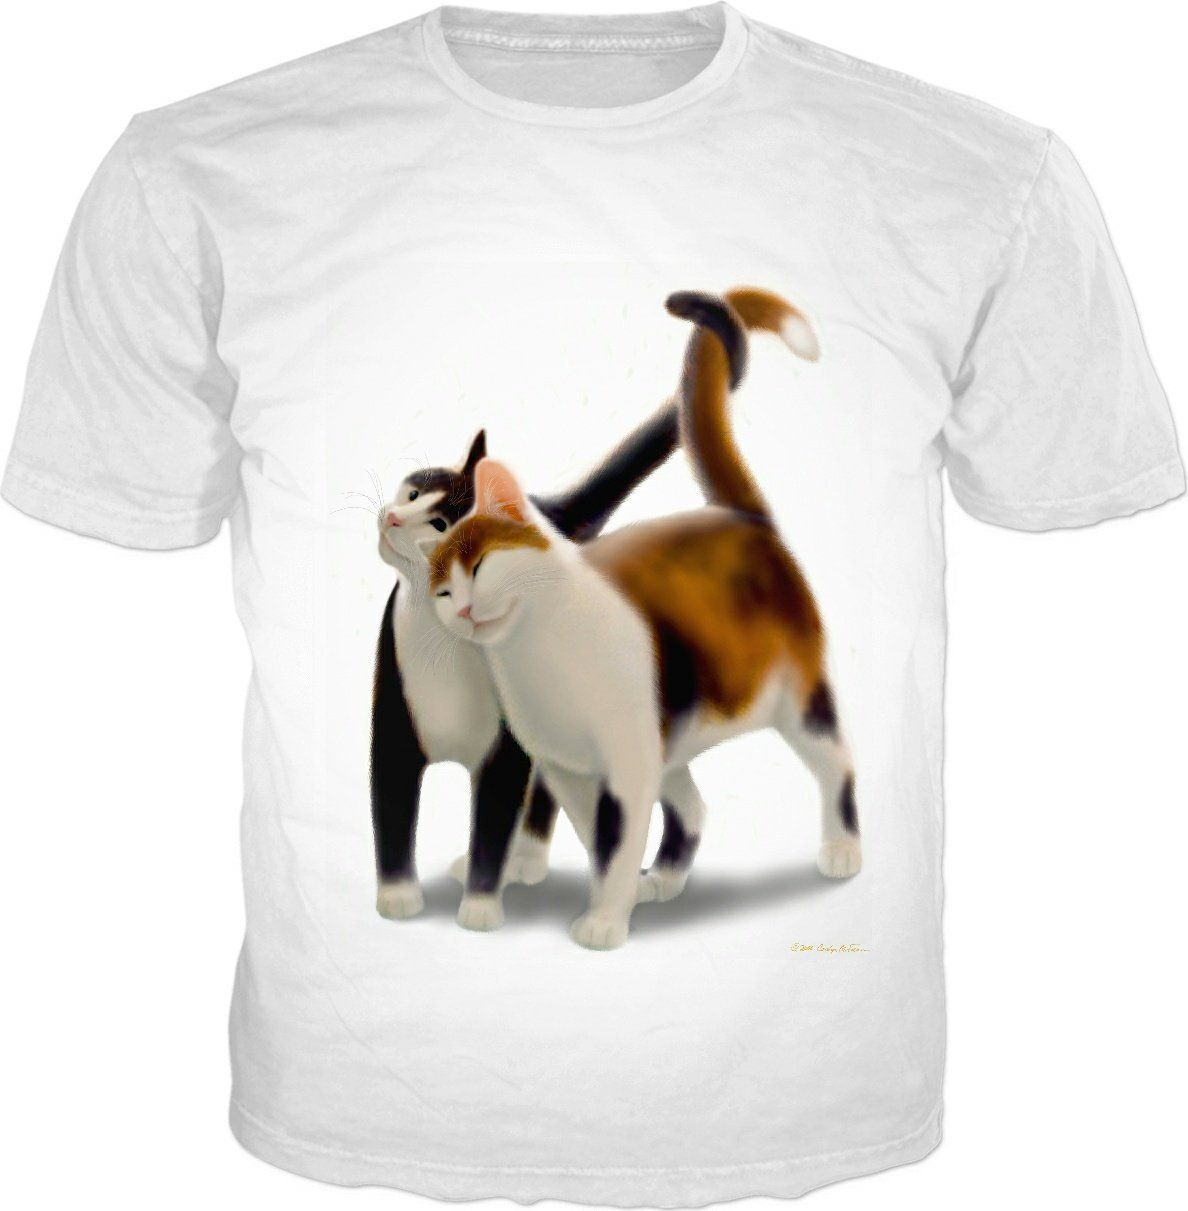 The Love Cats Cotton T-Shirt